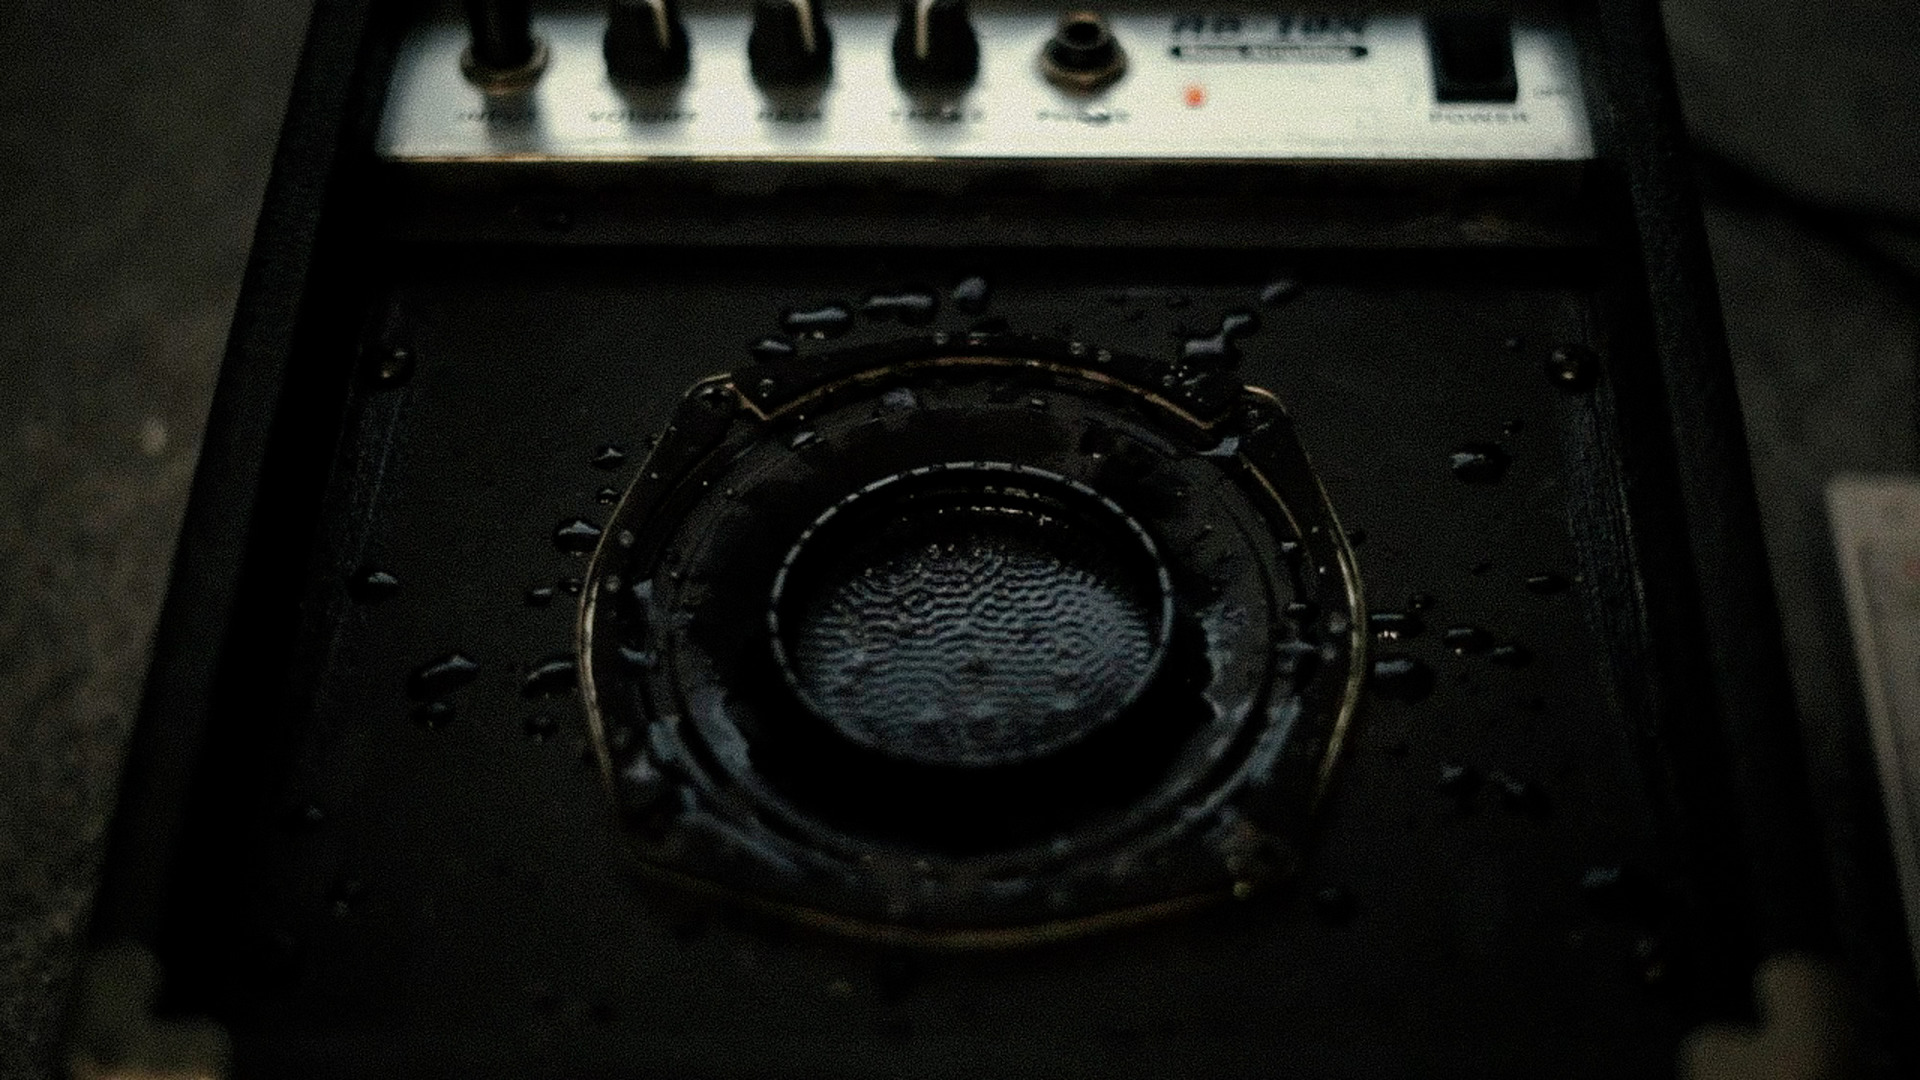 Cymatics are patterns that appear on the surface of a vibrating pool of water, a speaker cone is used here.